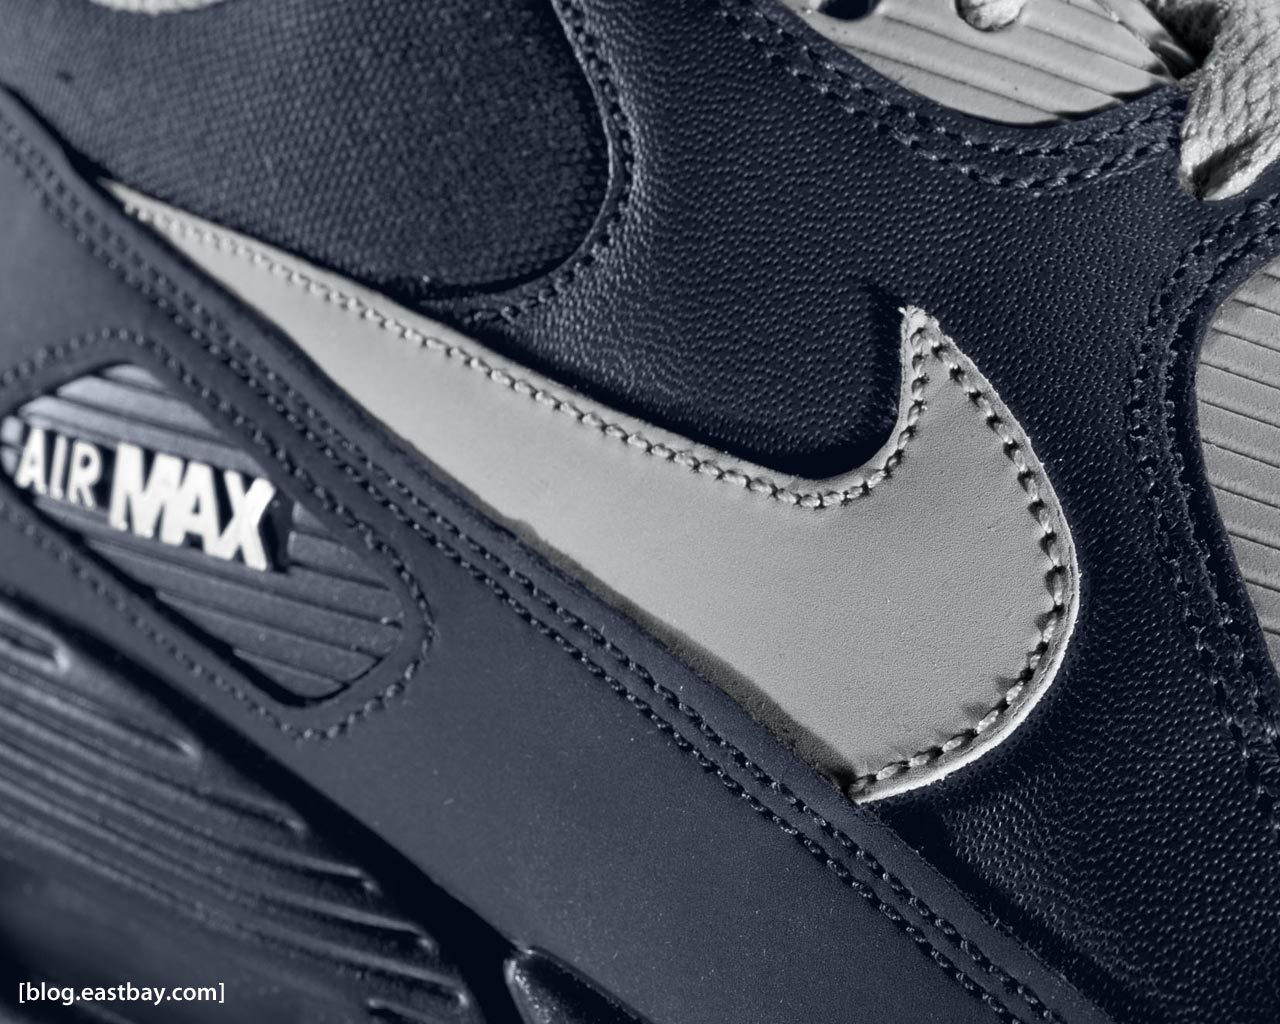 various colors 60811 531b3 Wallpaper: Nike Air Max 90 Sneak Peek | Eastbay Blog ...